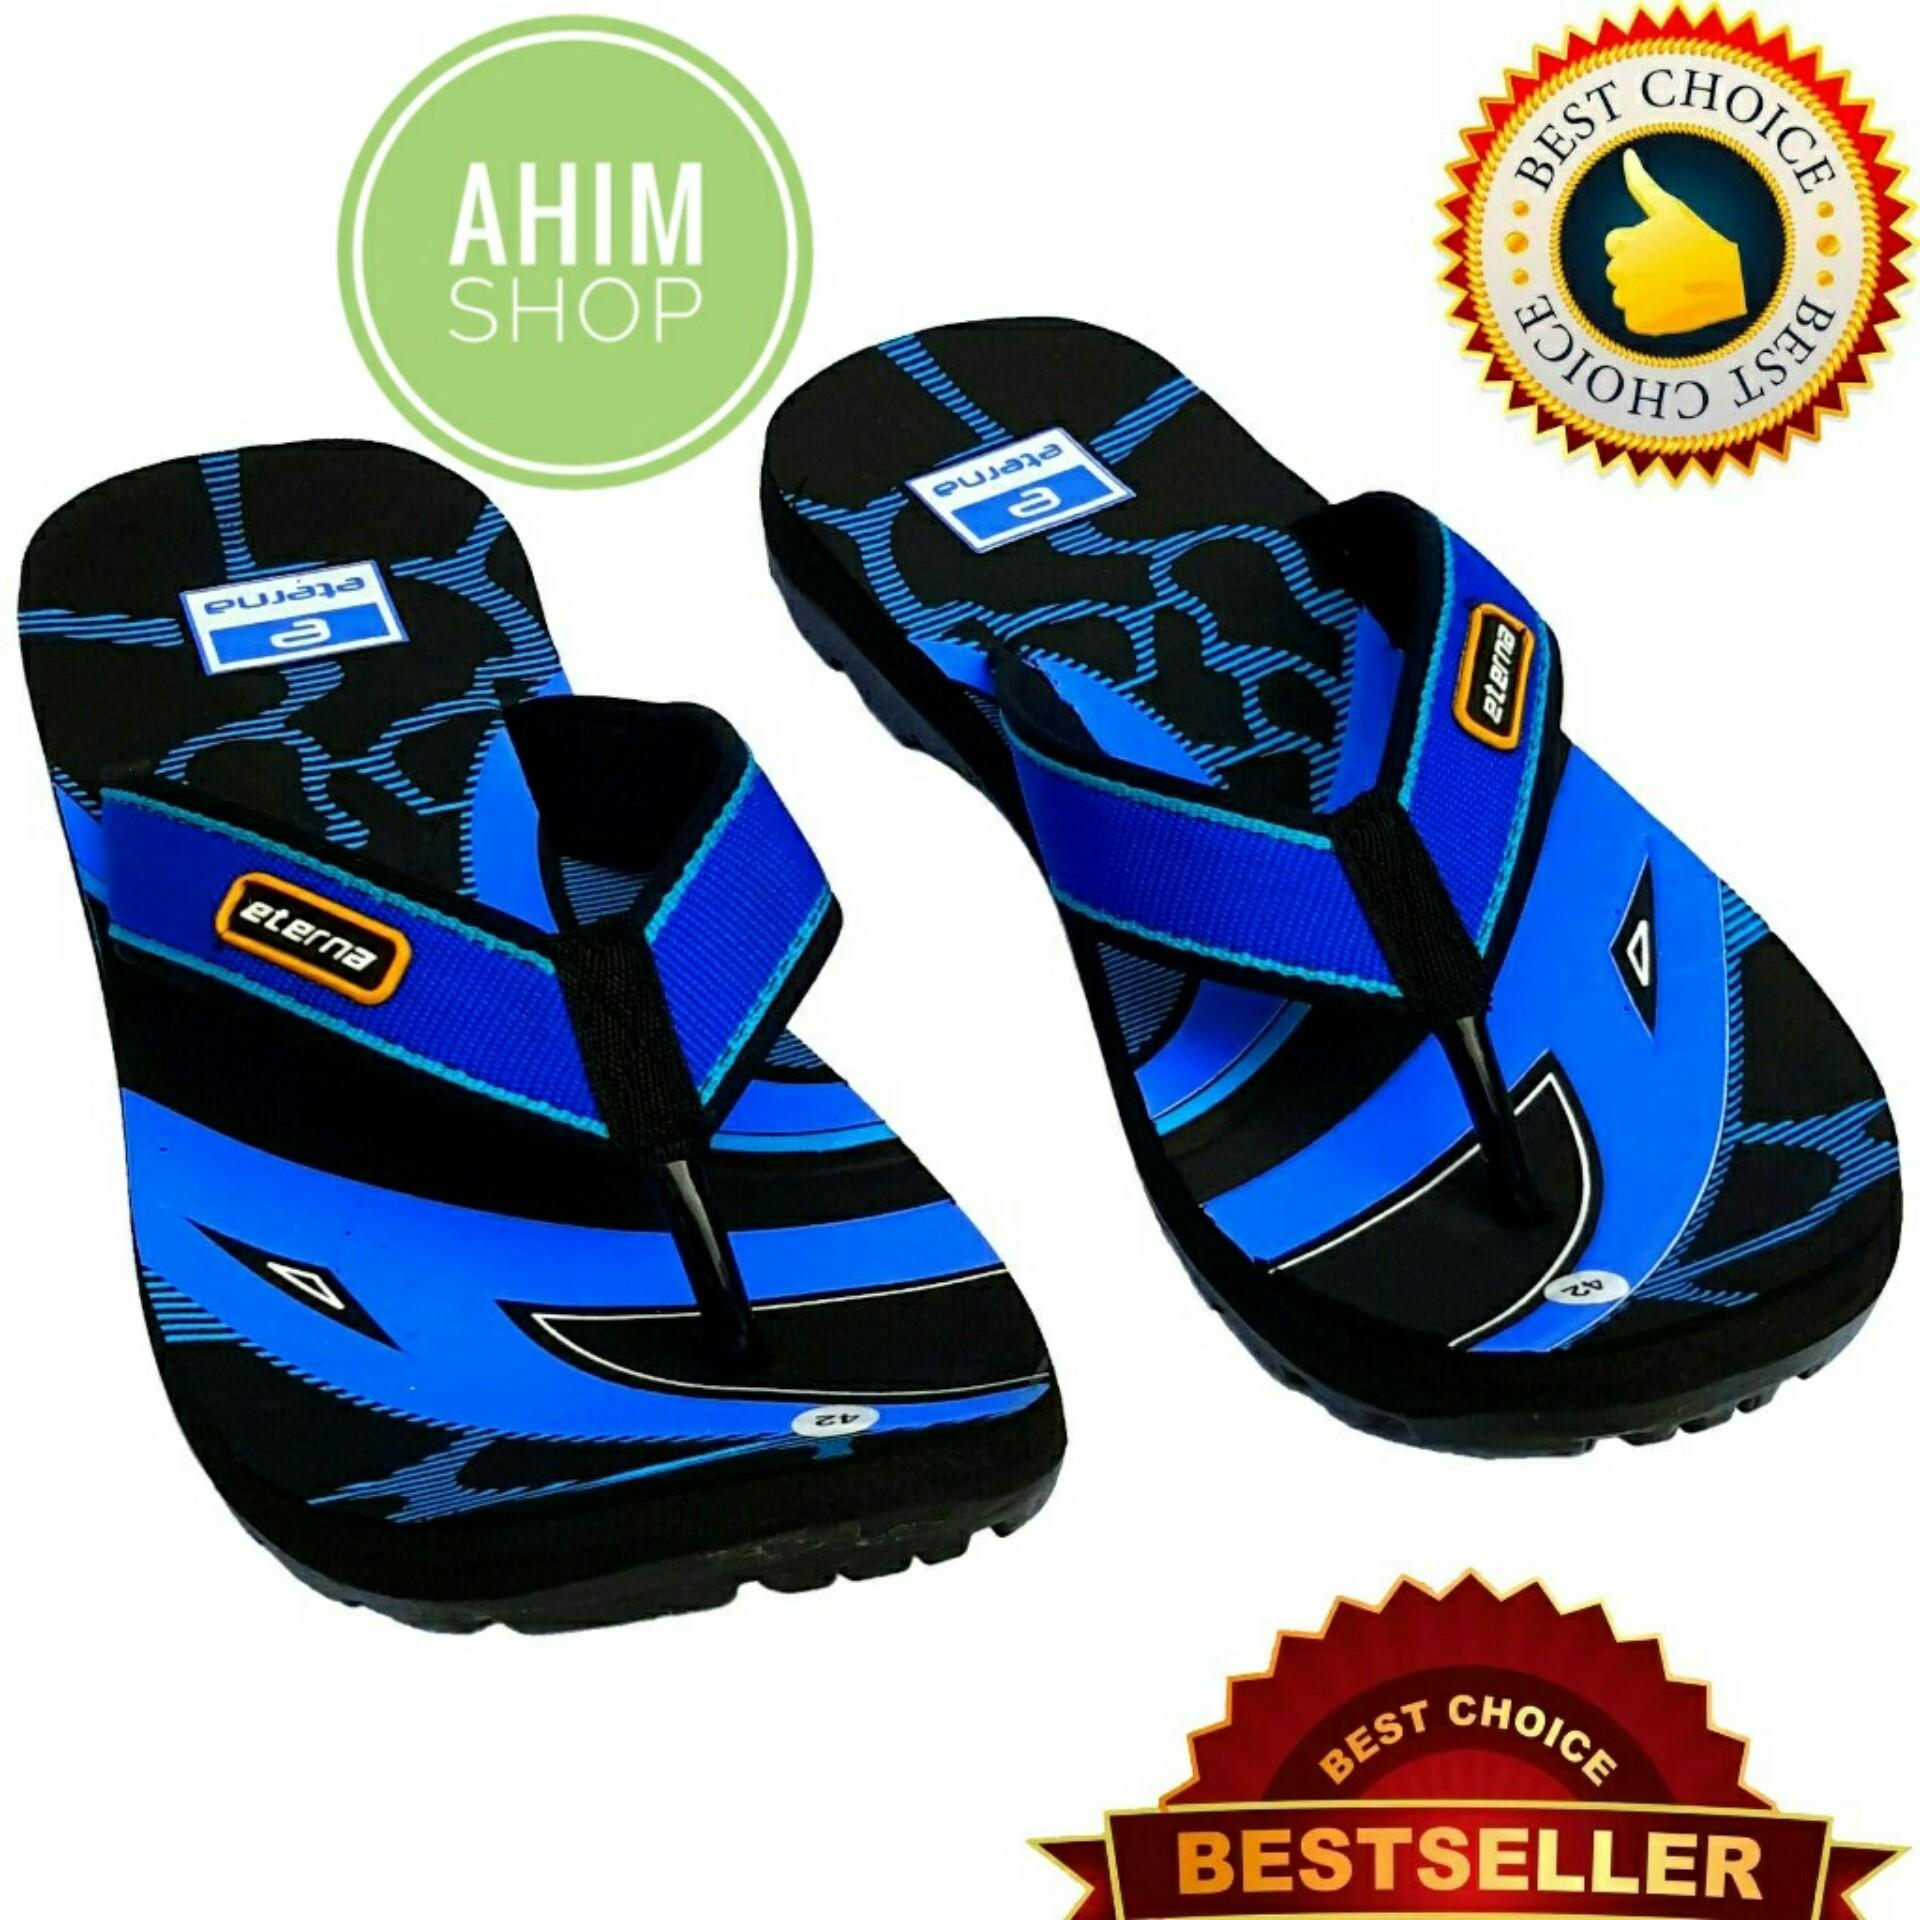 Eterna Sandal Gunung Jepit Pria Motif Seni Abstrak Trendy - Black Blue by Ahim Shop